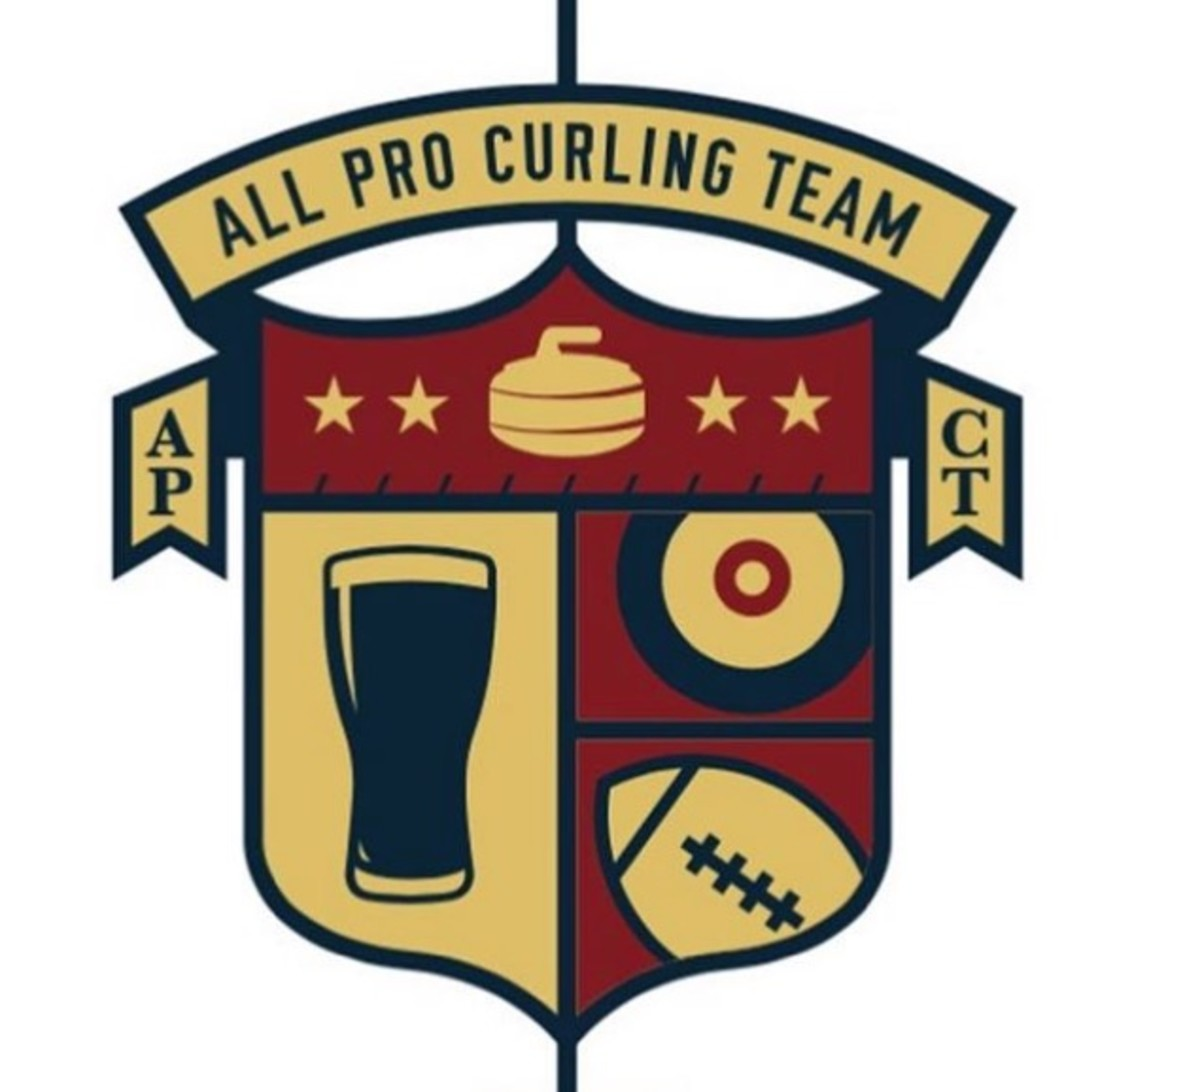 All Pro Curling